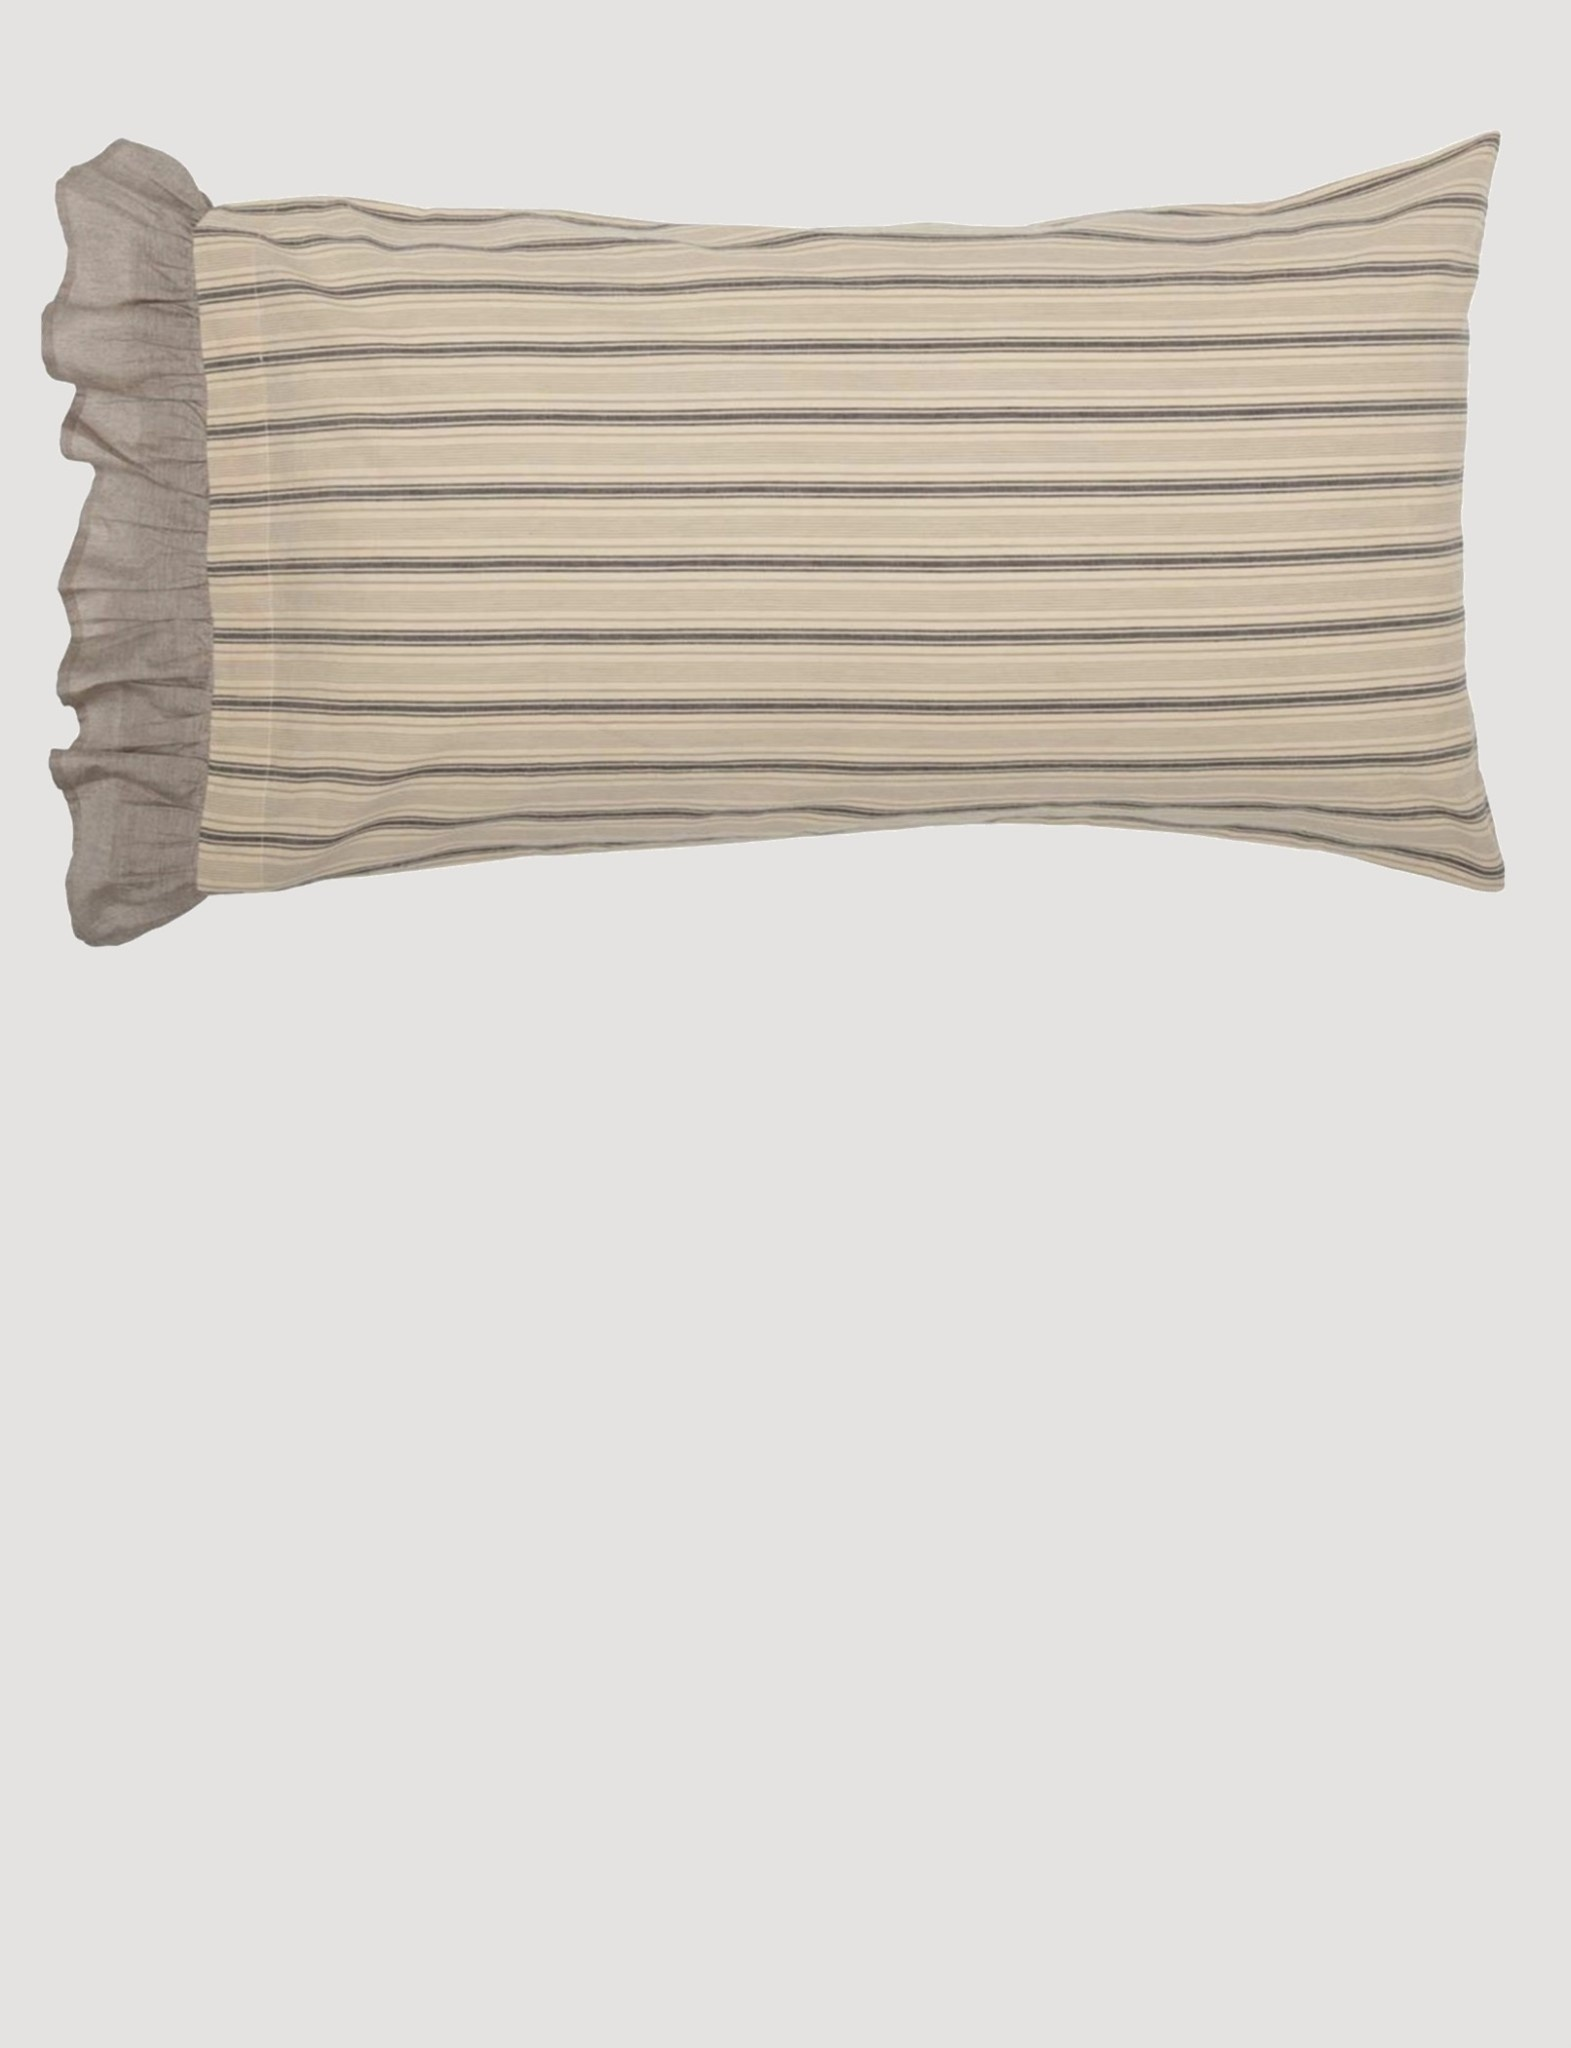 VHC Brands Sawyer Mill Charcoal Pillow Case Set of 2